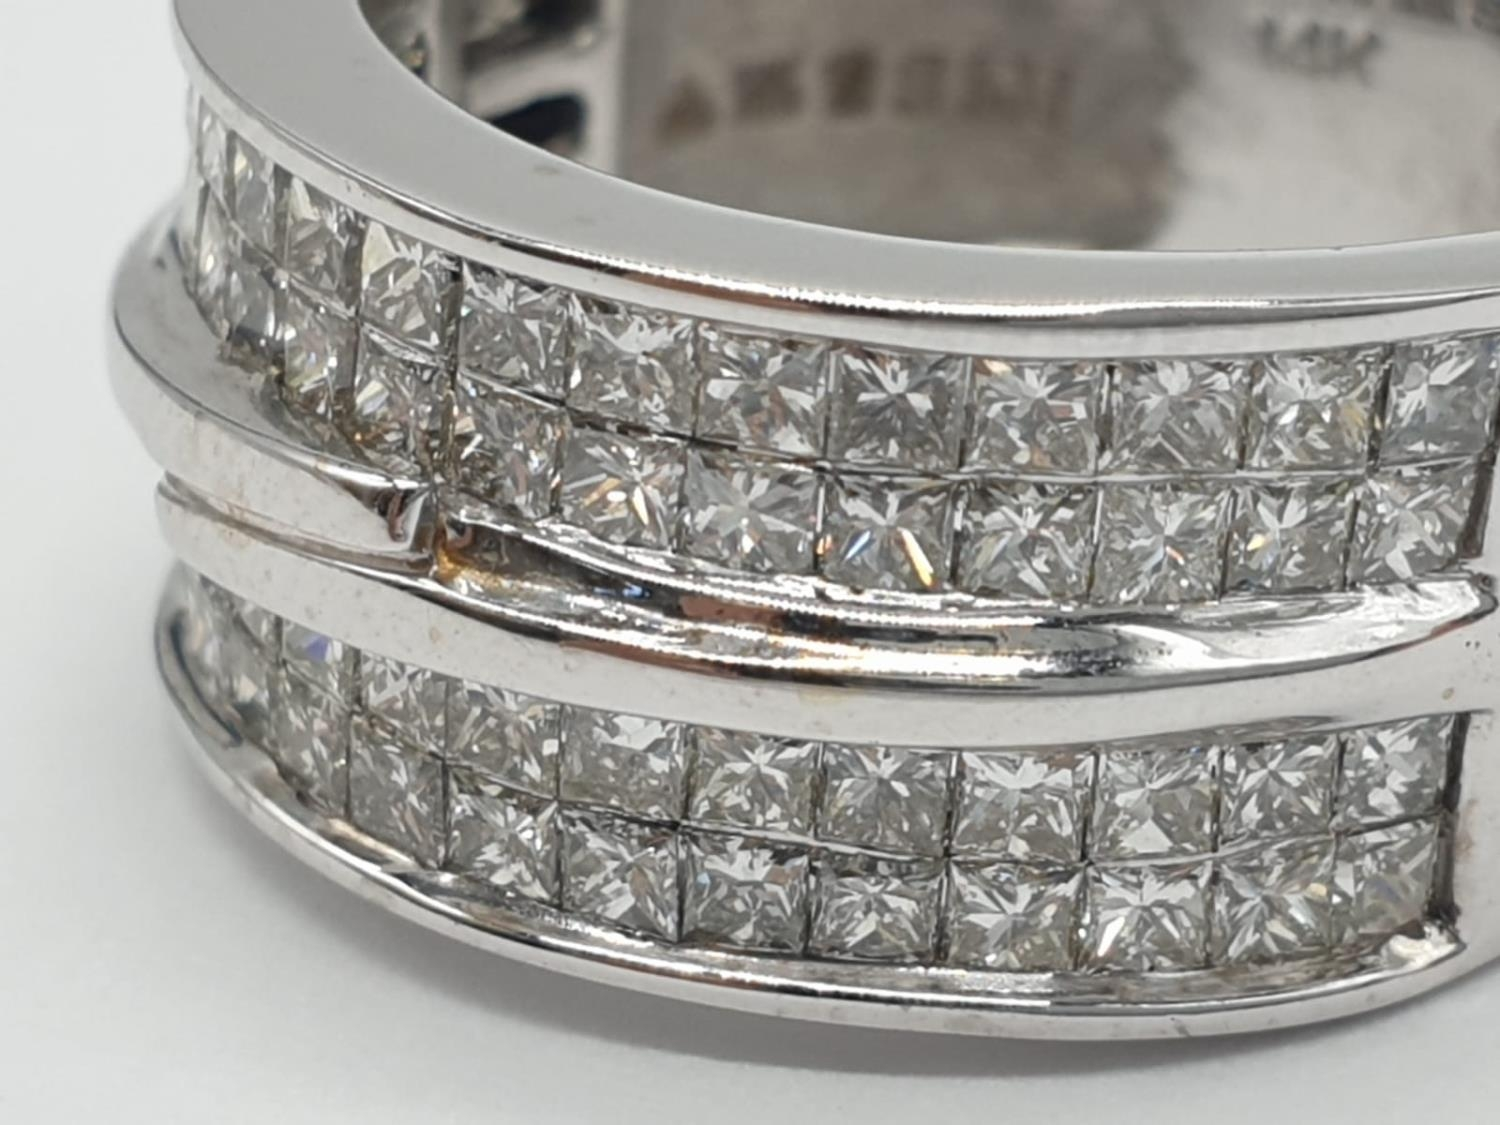 14ct white gold ring with 1.87ct diamonds. Size M and weighs 6.8g. - Image 2 of 6